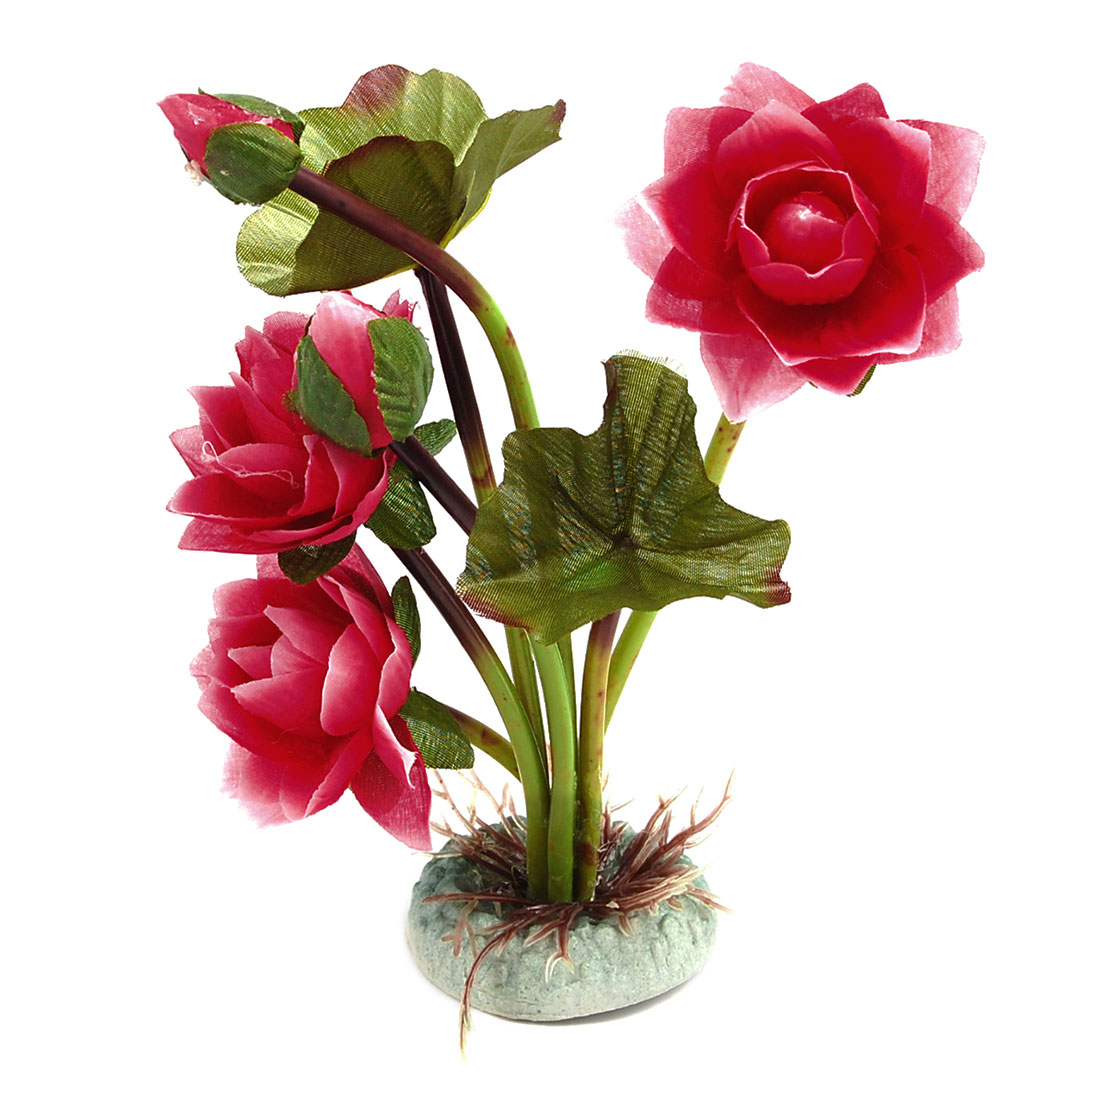 Hot Pink Lotus Decor Underwater Ornament for Fish Tank